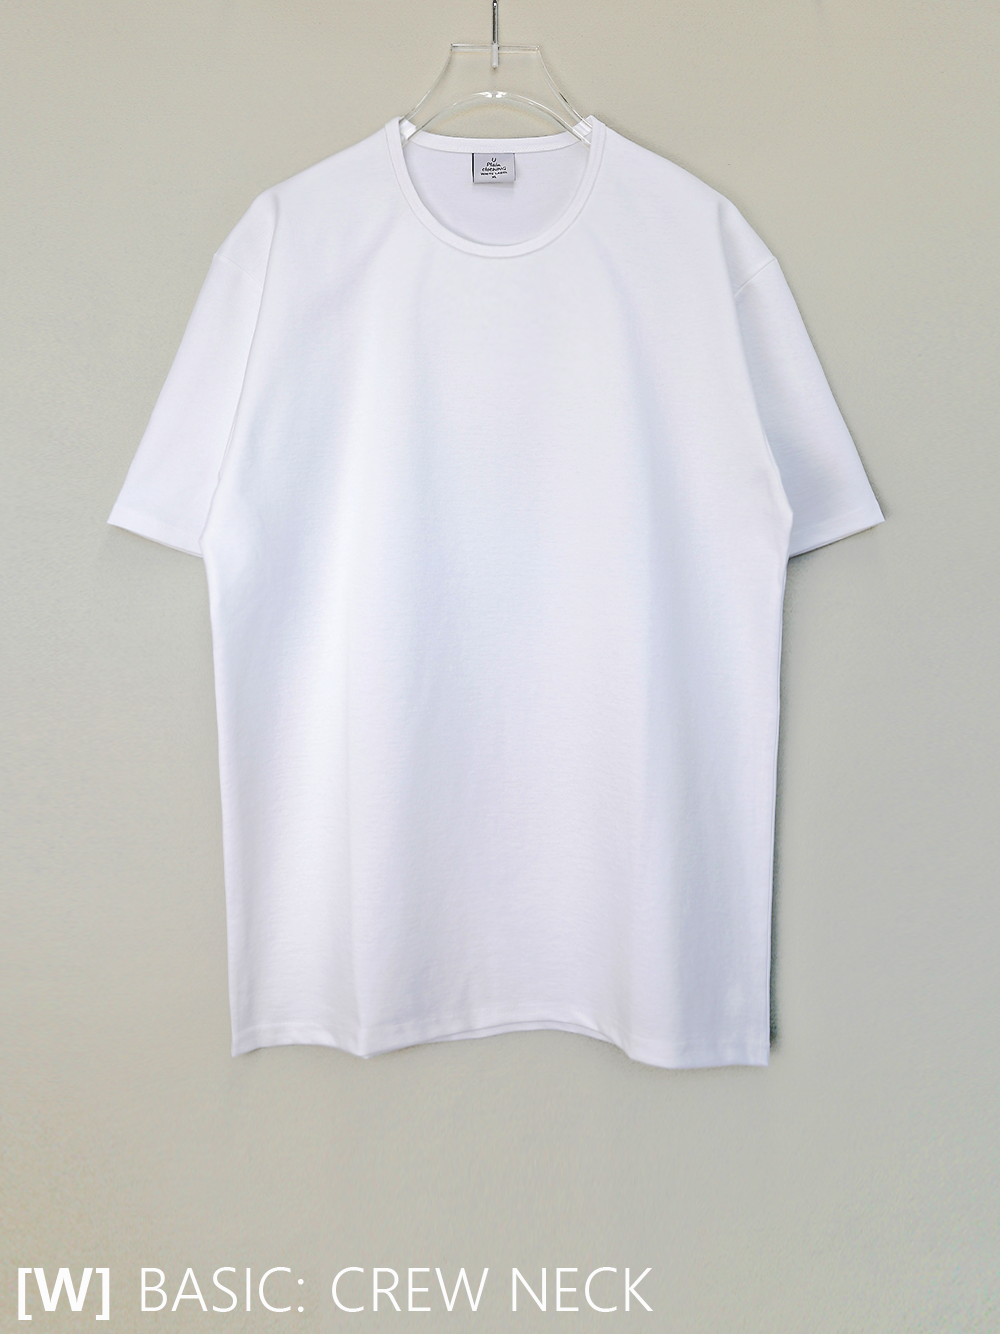 20-21ss [WHITE LABEL] 베이직핏) 크루넥 - 5color